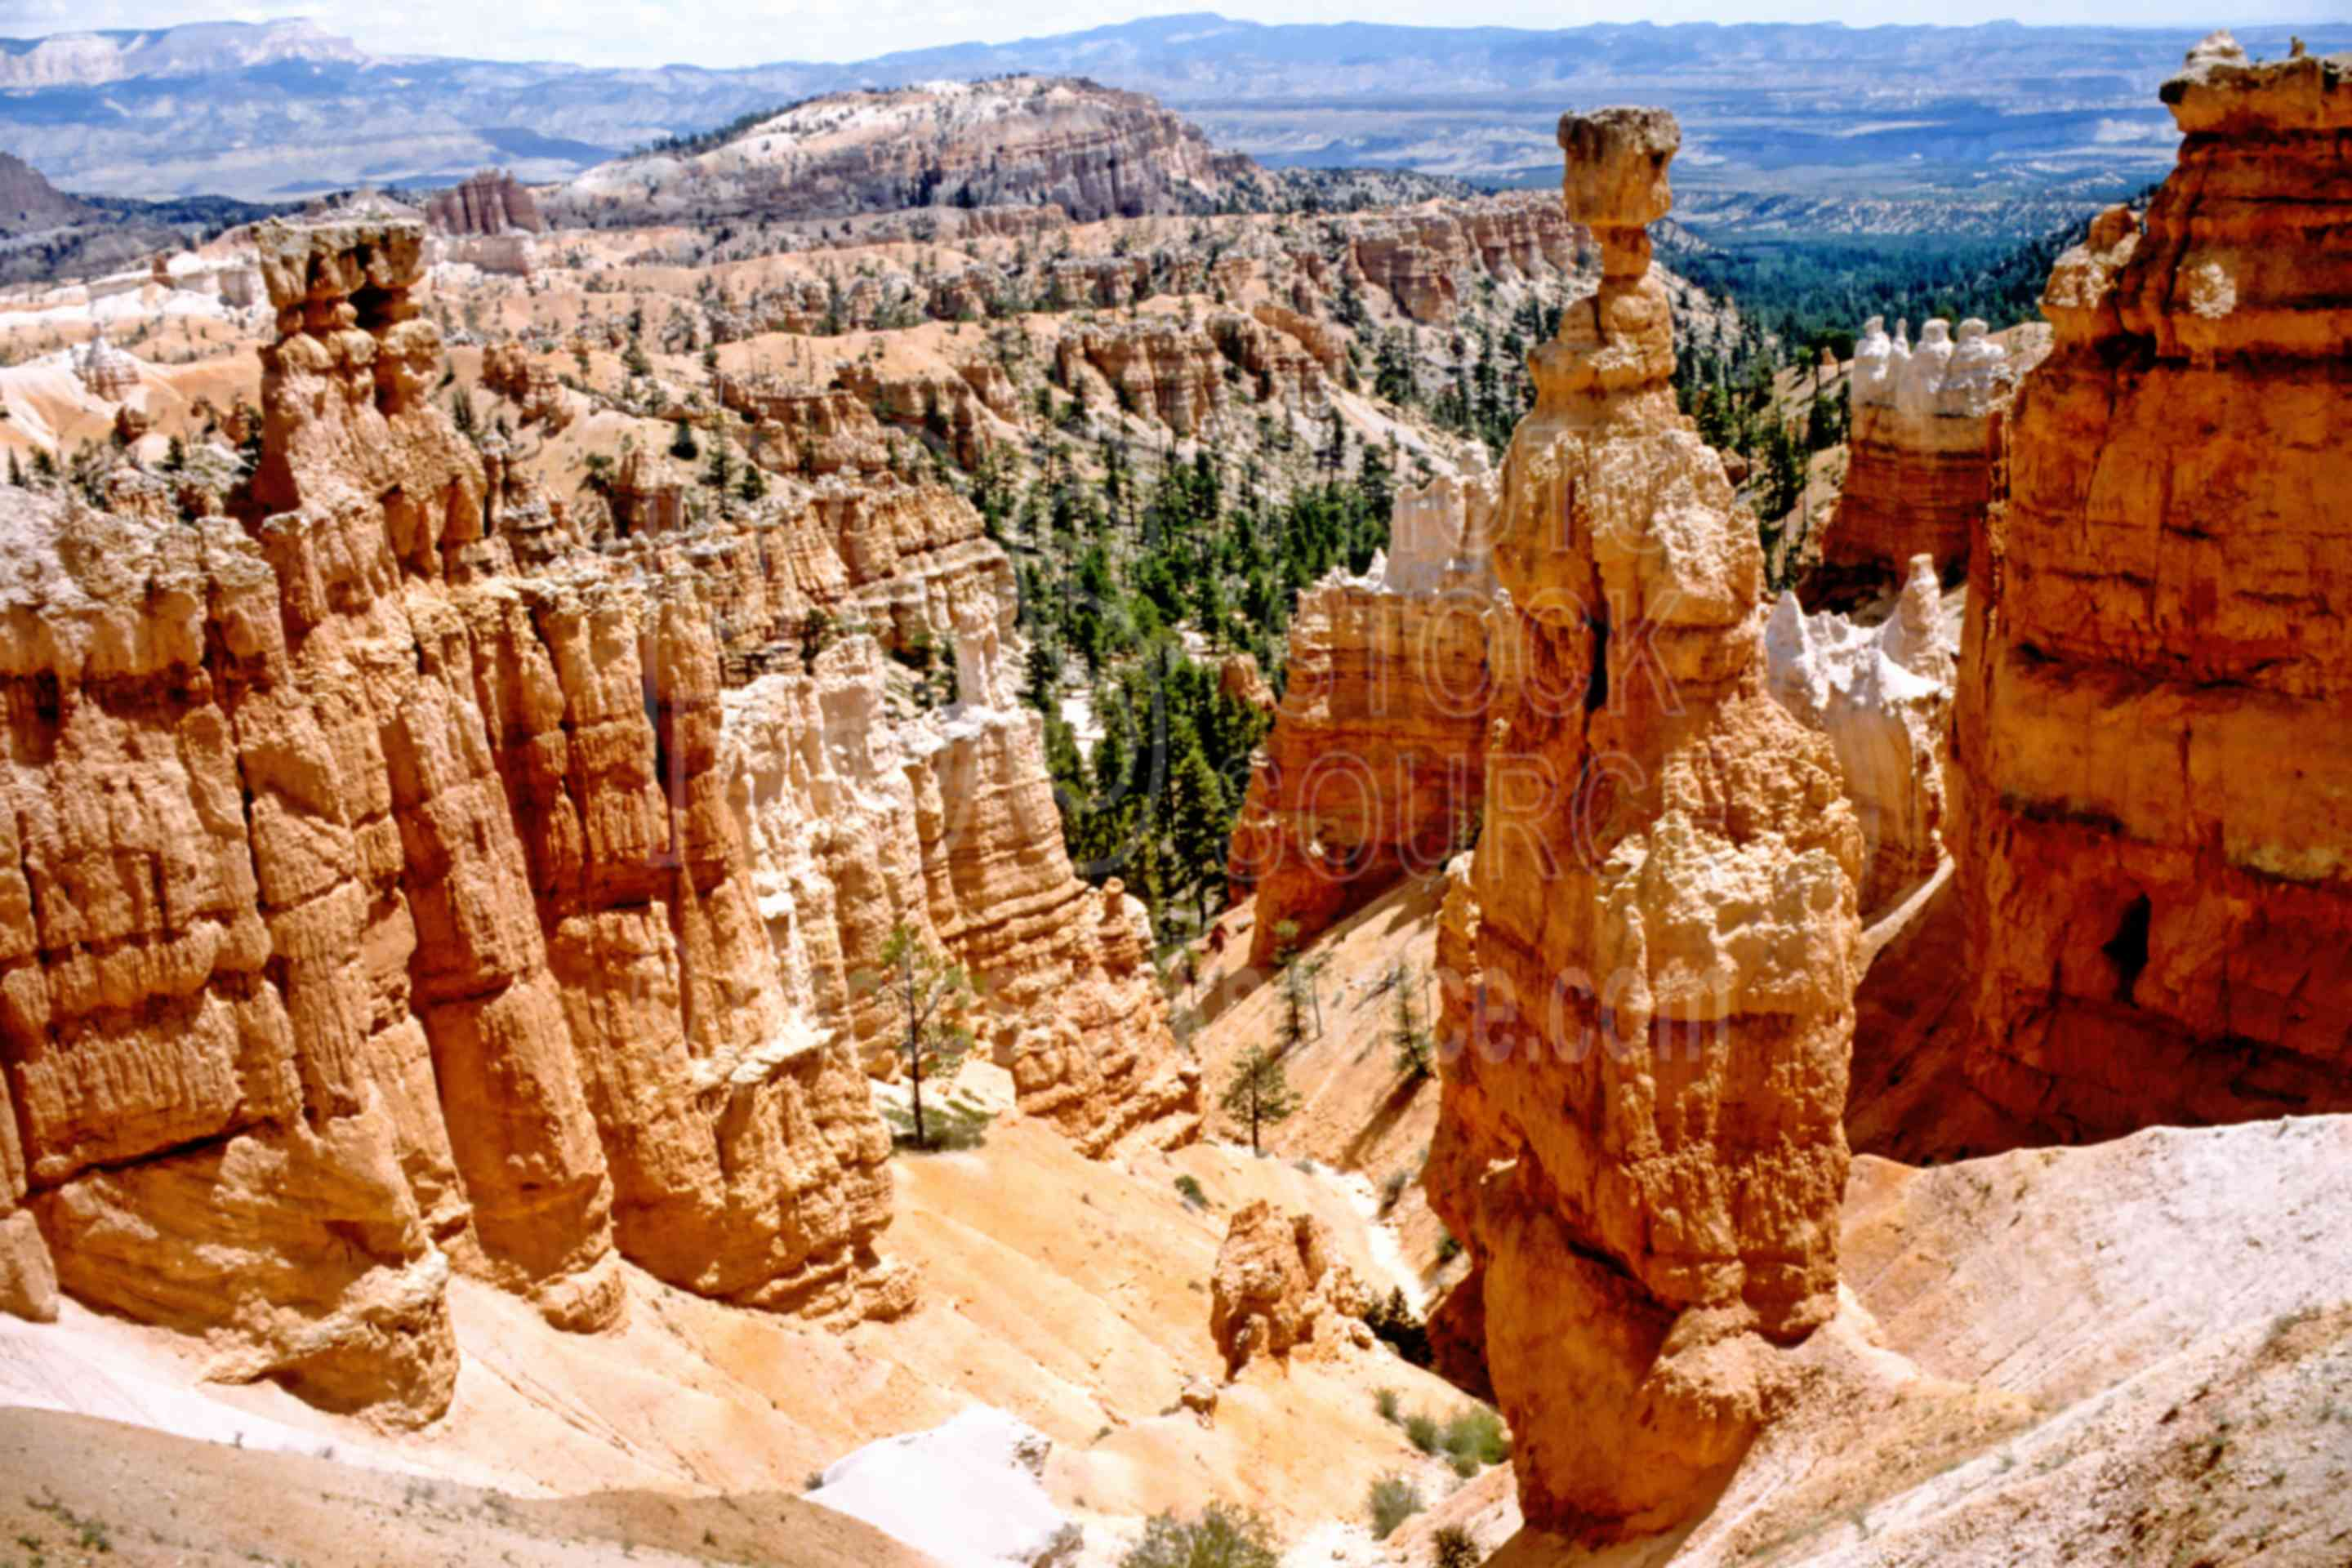 Hoodoo,canyon,usas,national park,nature,national parks